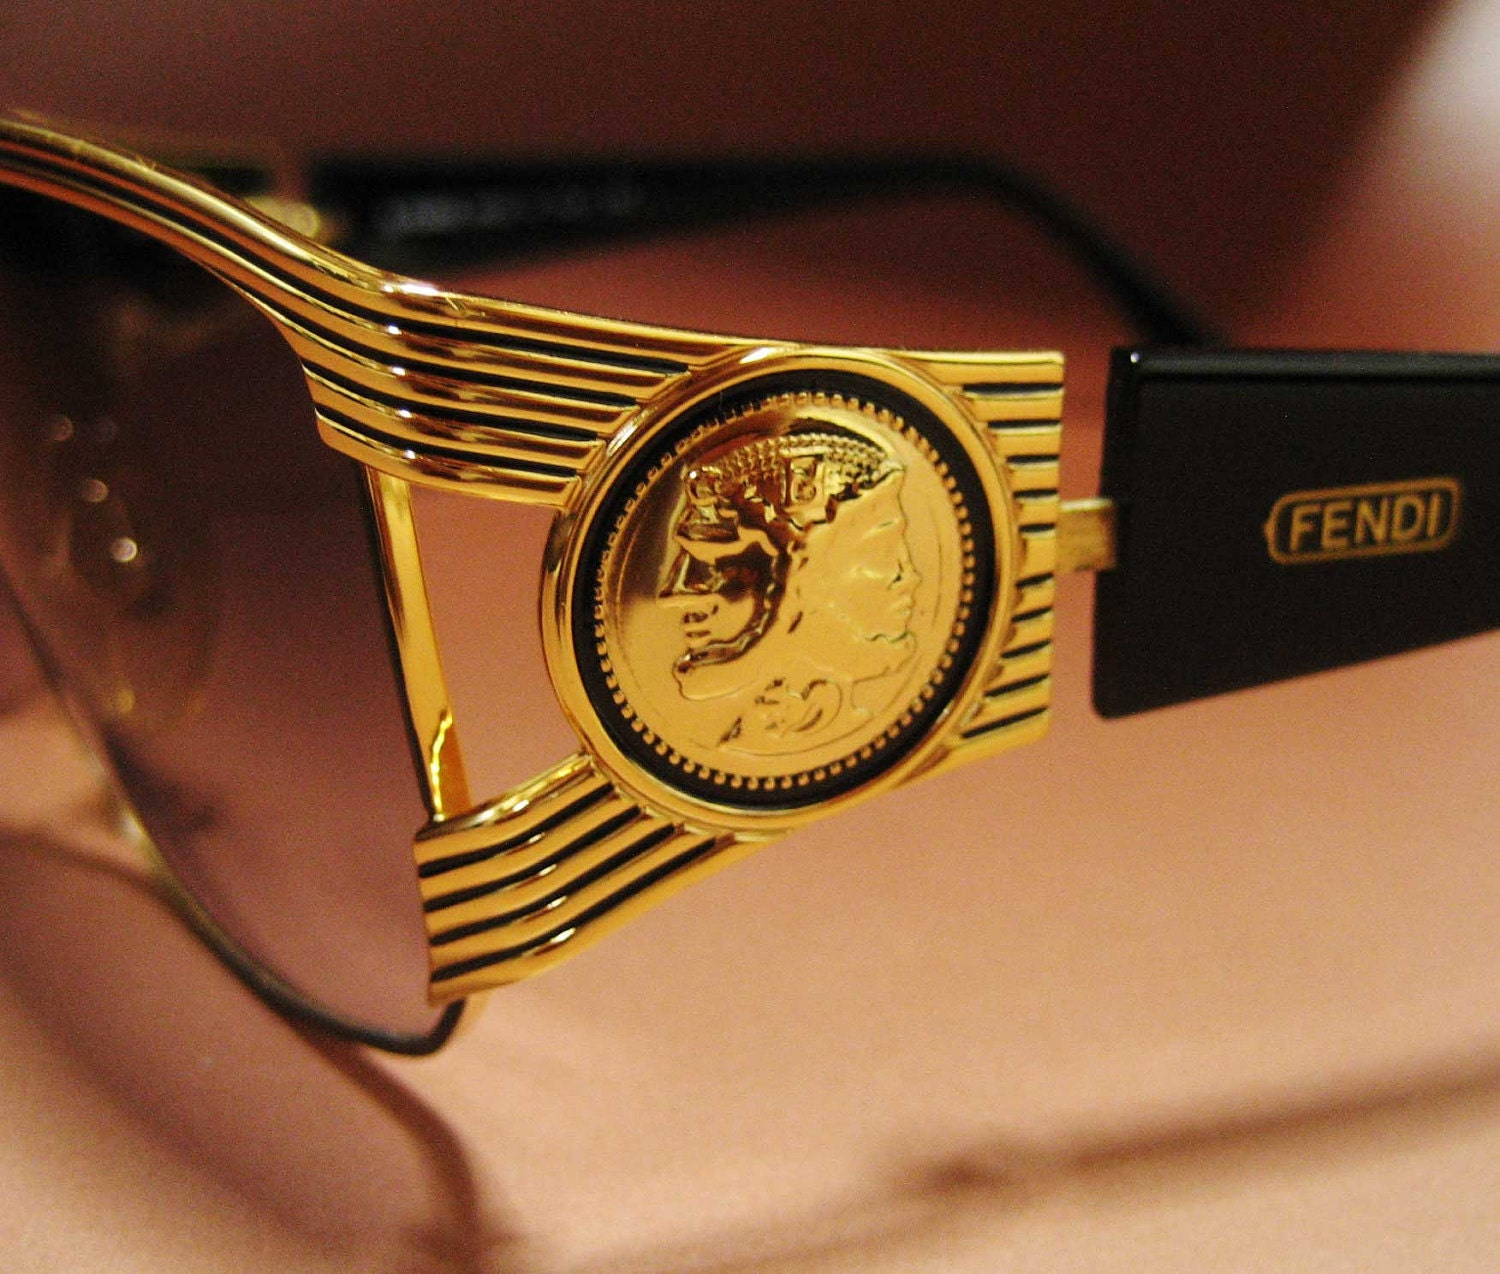 All Gold Glasses Frames : FENDI / Vintage Sunglasses Eyewear / Gold plated Smoke